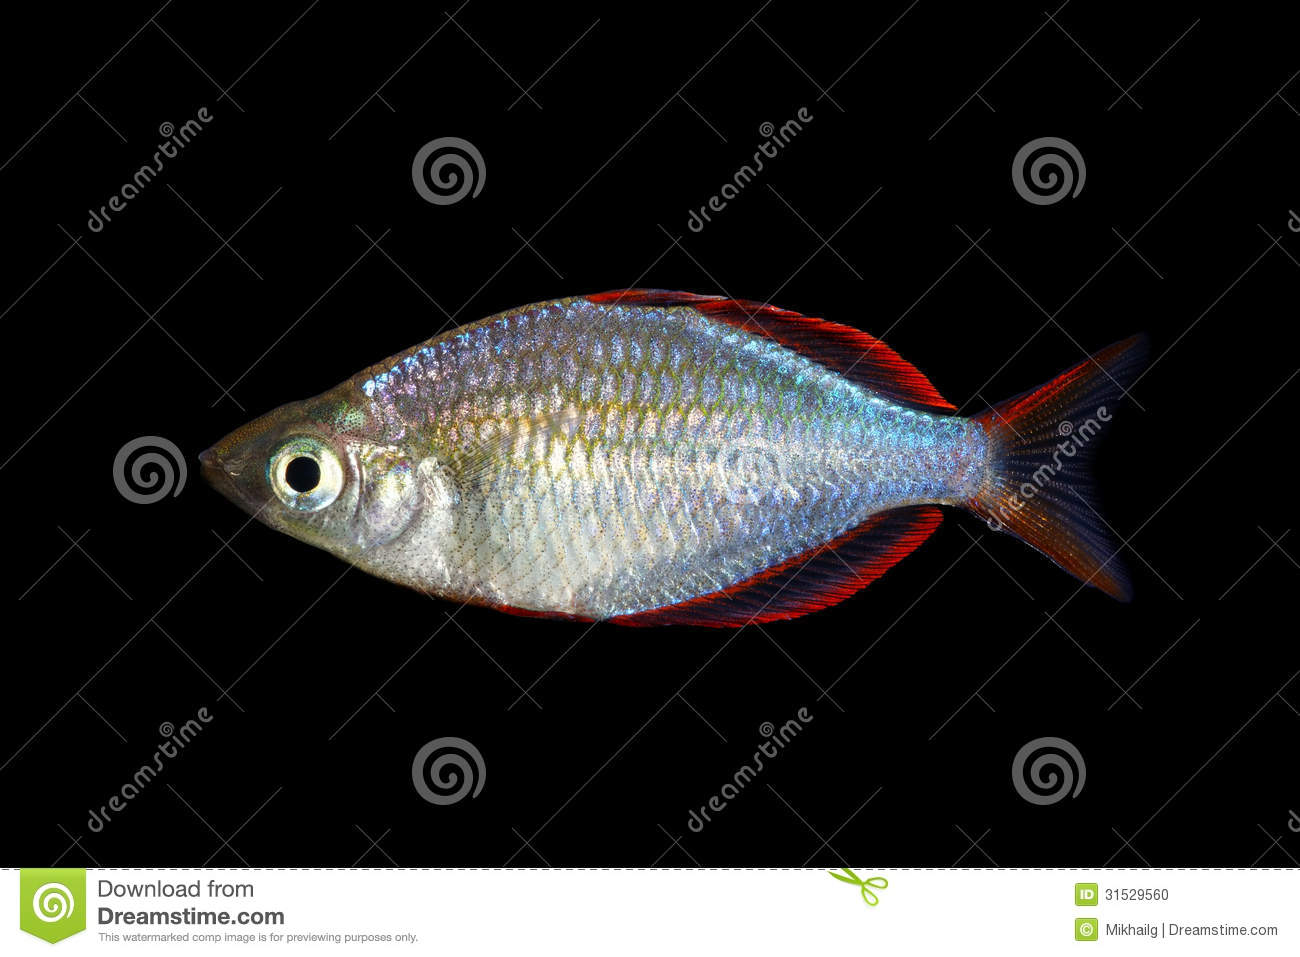 Neon Dwarf Rainbowfish Stock Photo - Image: 31529560